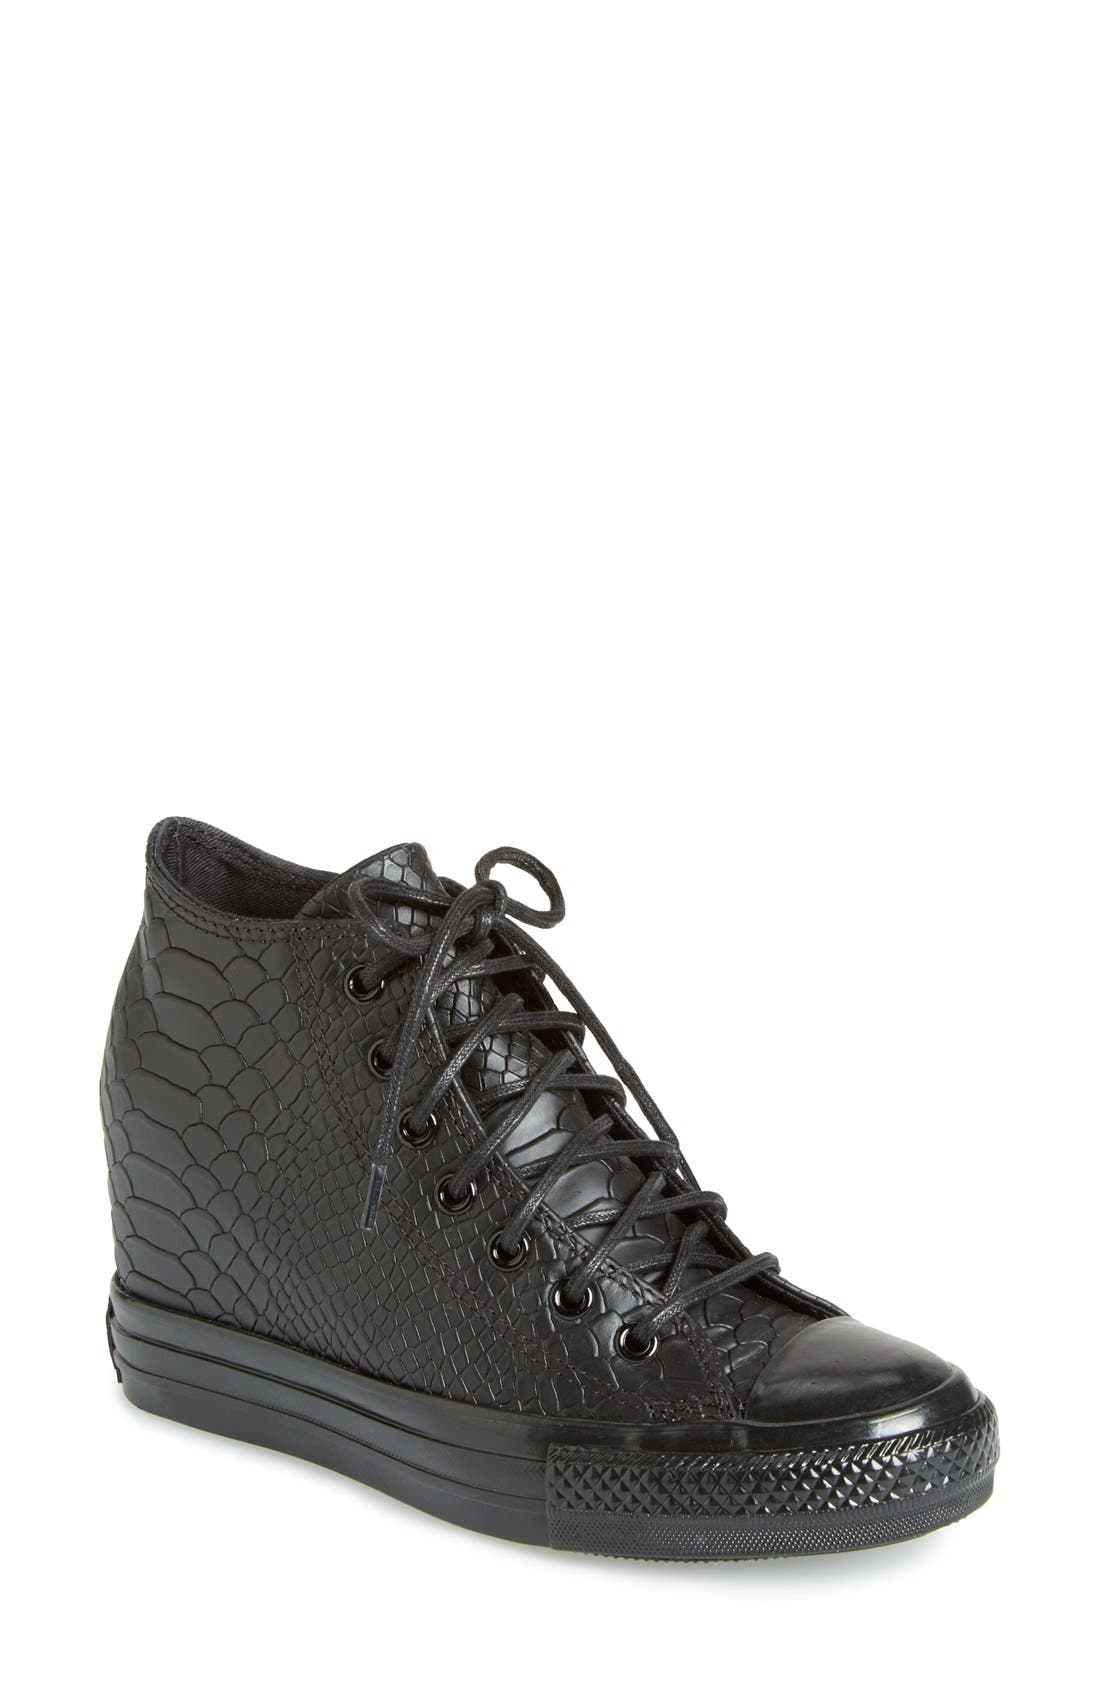 Chuck Taylor<sup>®</sup> All Star<sup>®</sup> 'Embossed Reptile' Wedge Sneaker,                             Main thumbnail 1, color,                             001